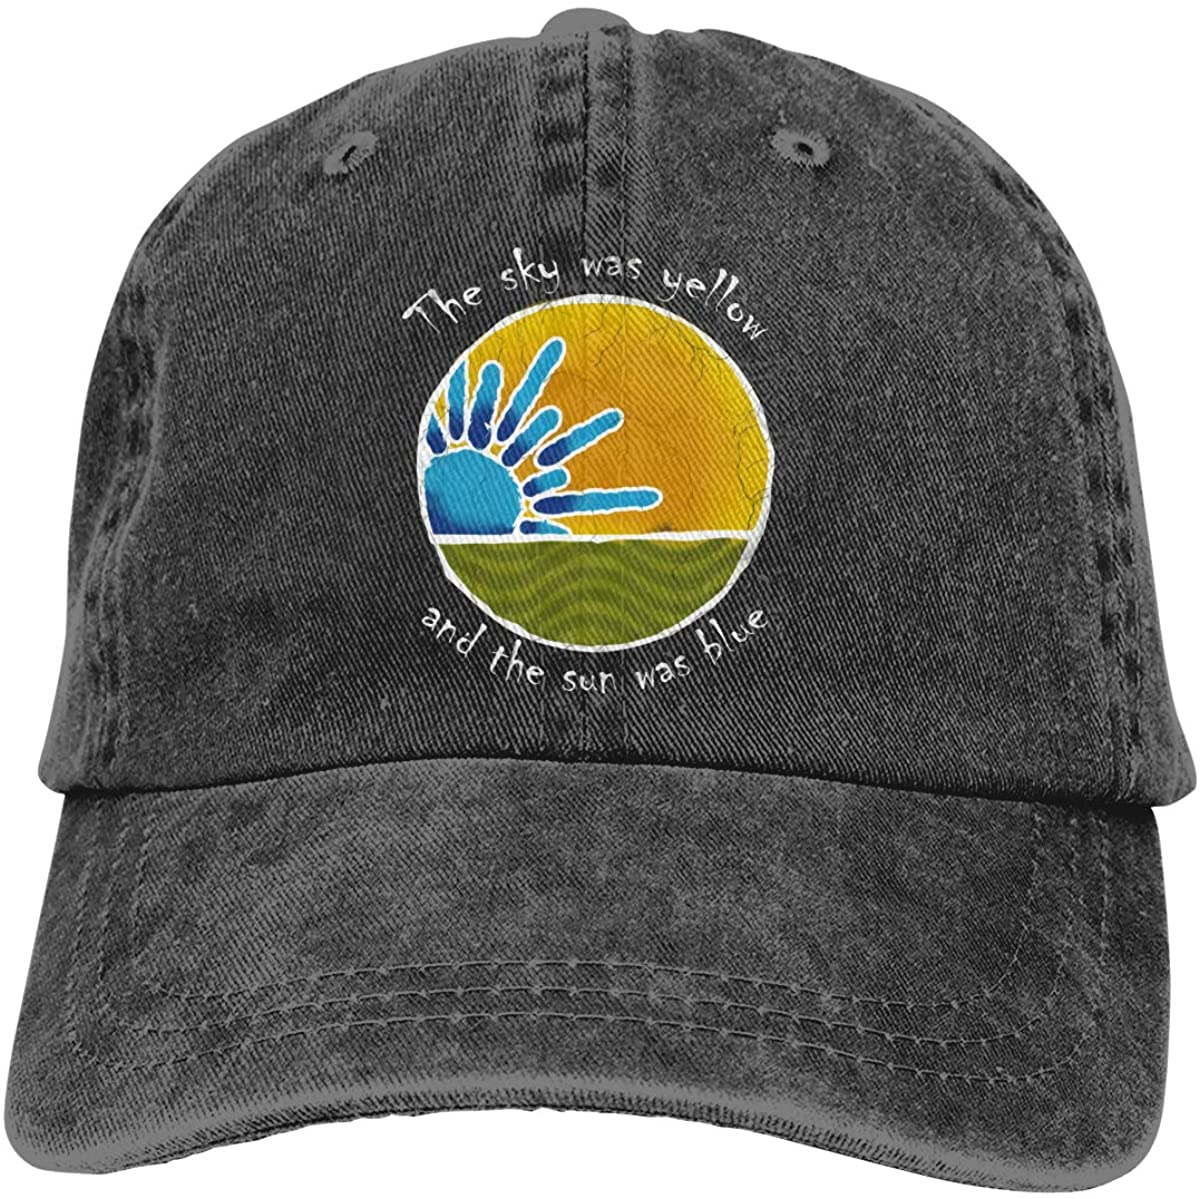 PANVCDY Sky was Yellow Sun was Blue - Scarlet Begonias Inspired Adjustable Unisex Hat Baseball Caps Black